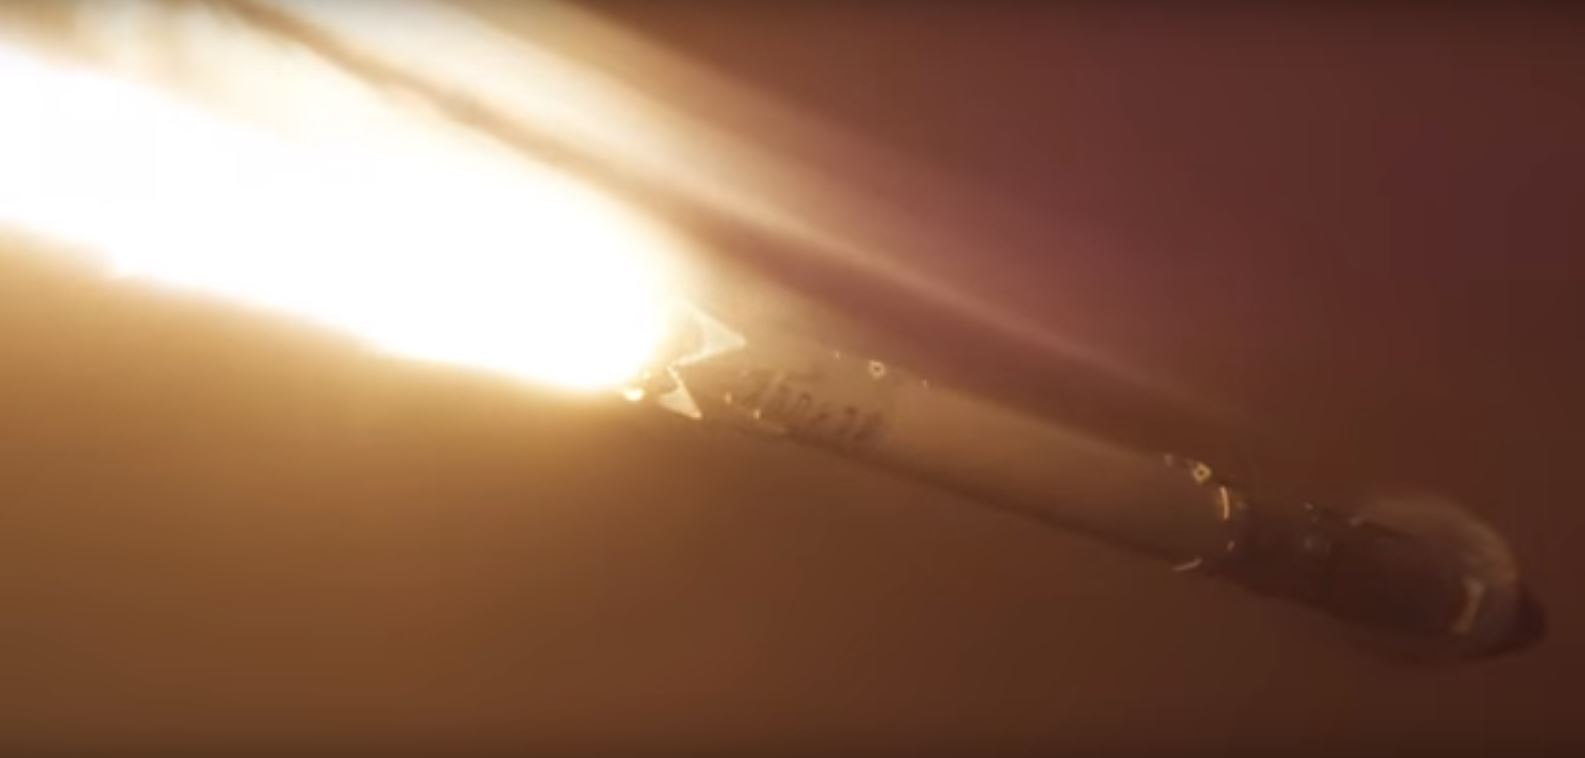 This SpaceX Nighttime Rocket Launch and Landing Video Is Simply Spectacular